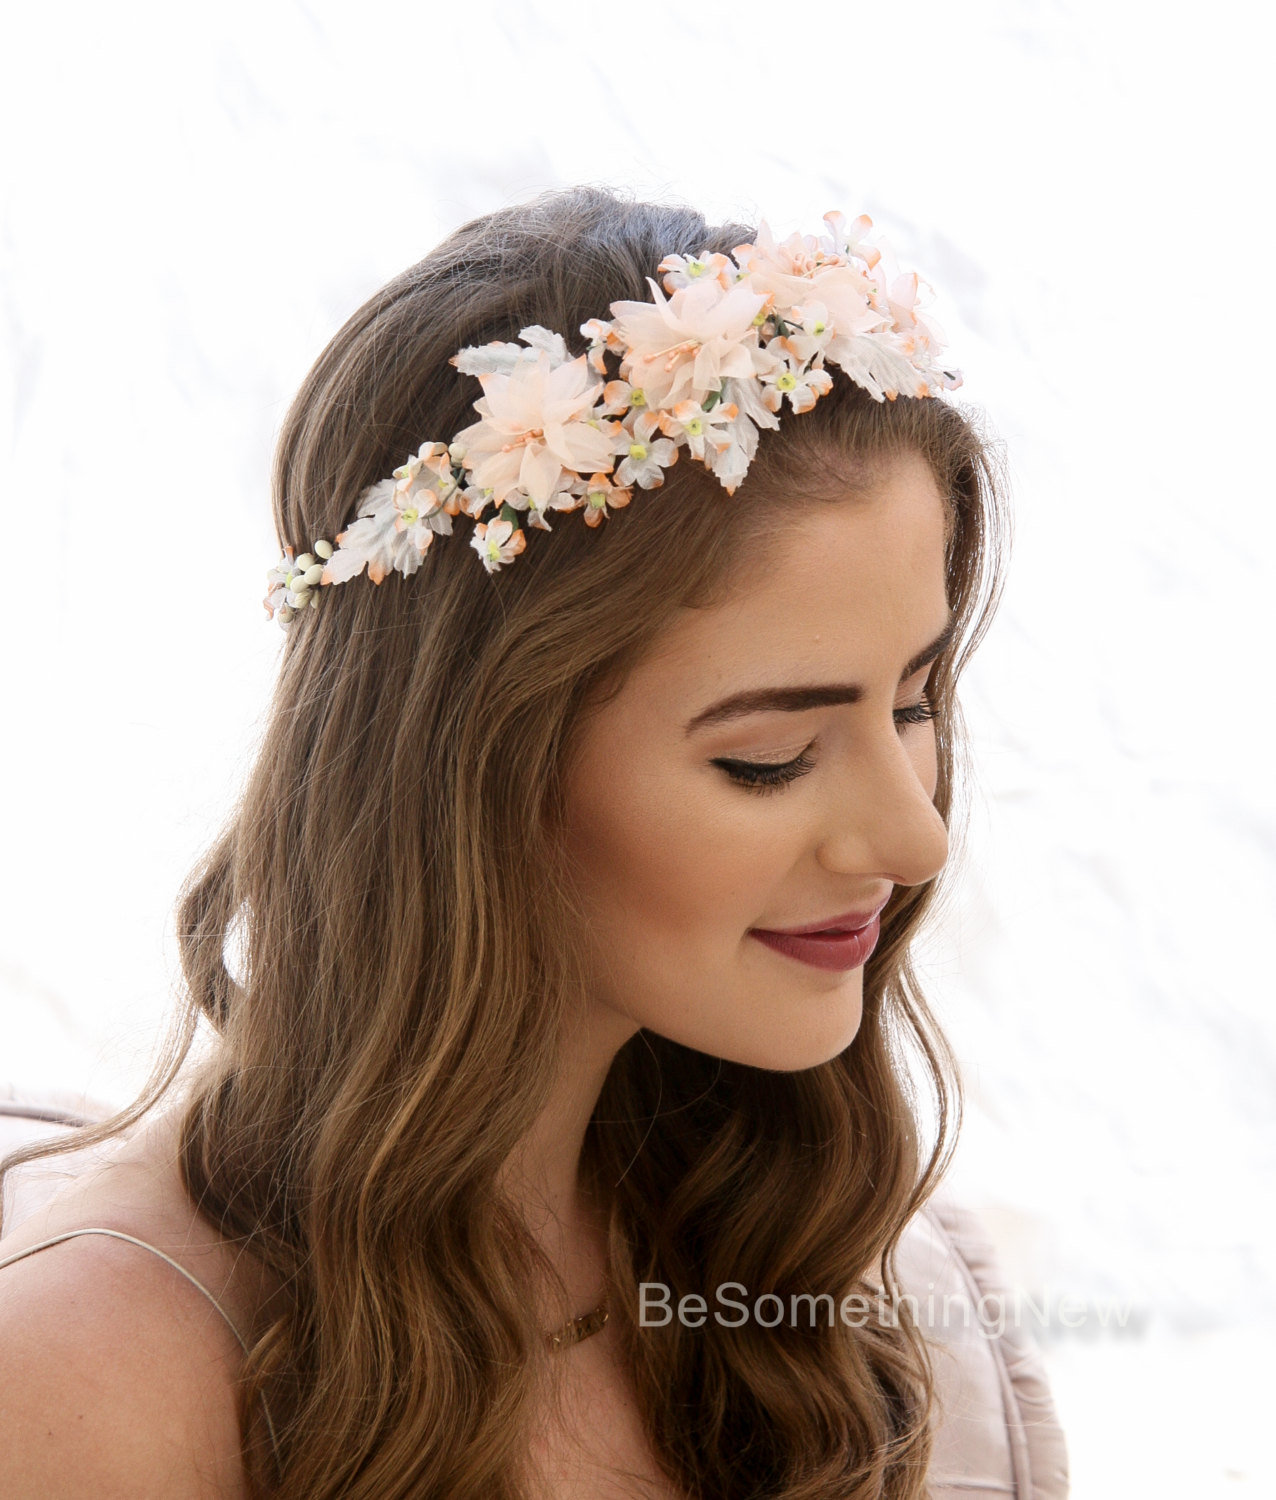 Peach Flower Crown made from Vintage Flowers Floral Headband Bridesmaids  Hair Accessory Flower Girl Halo Boho Music Festival flower crown – Be  Something New 4dac701c471